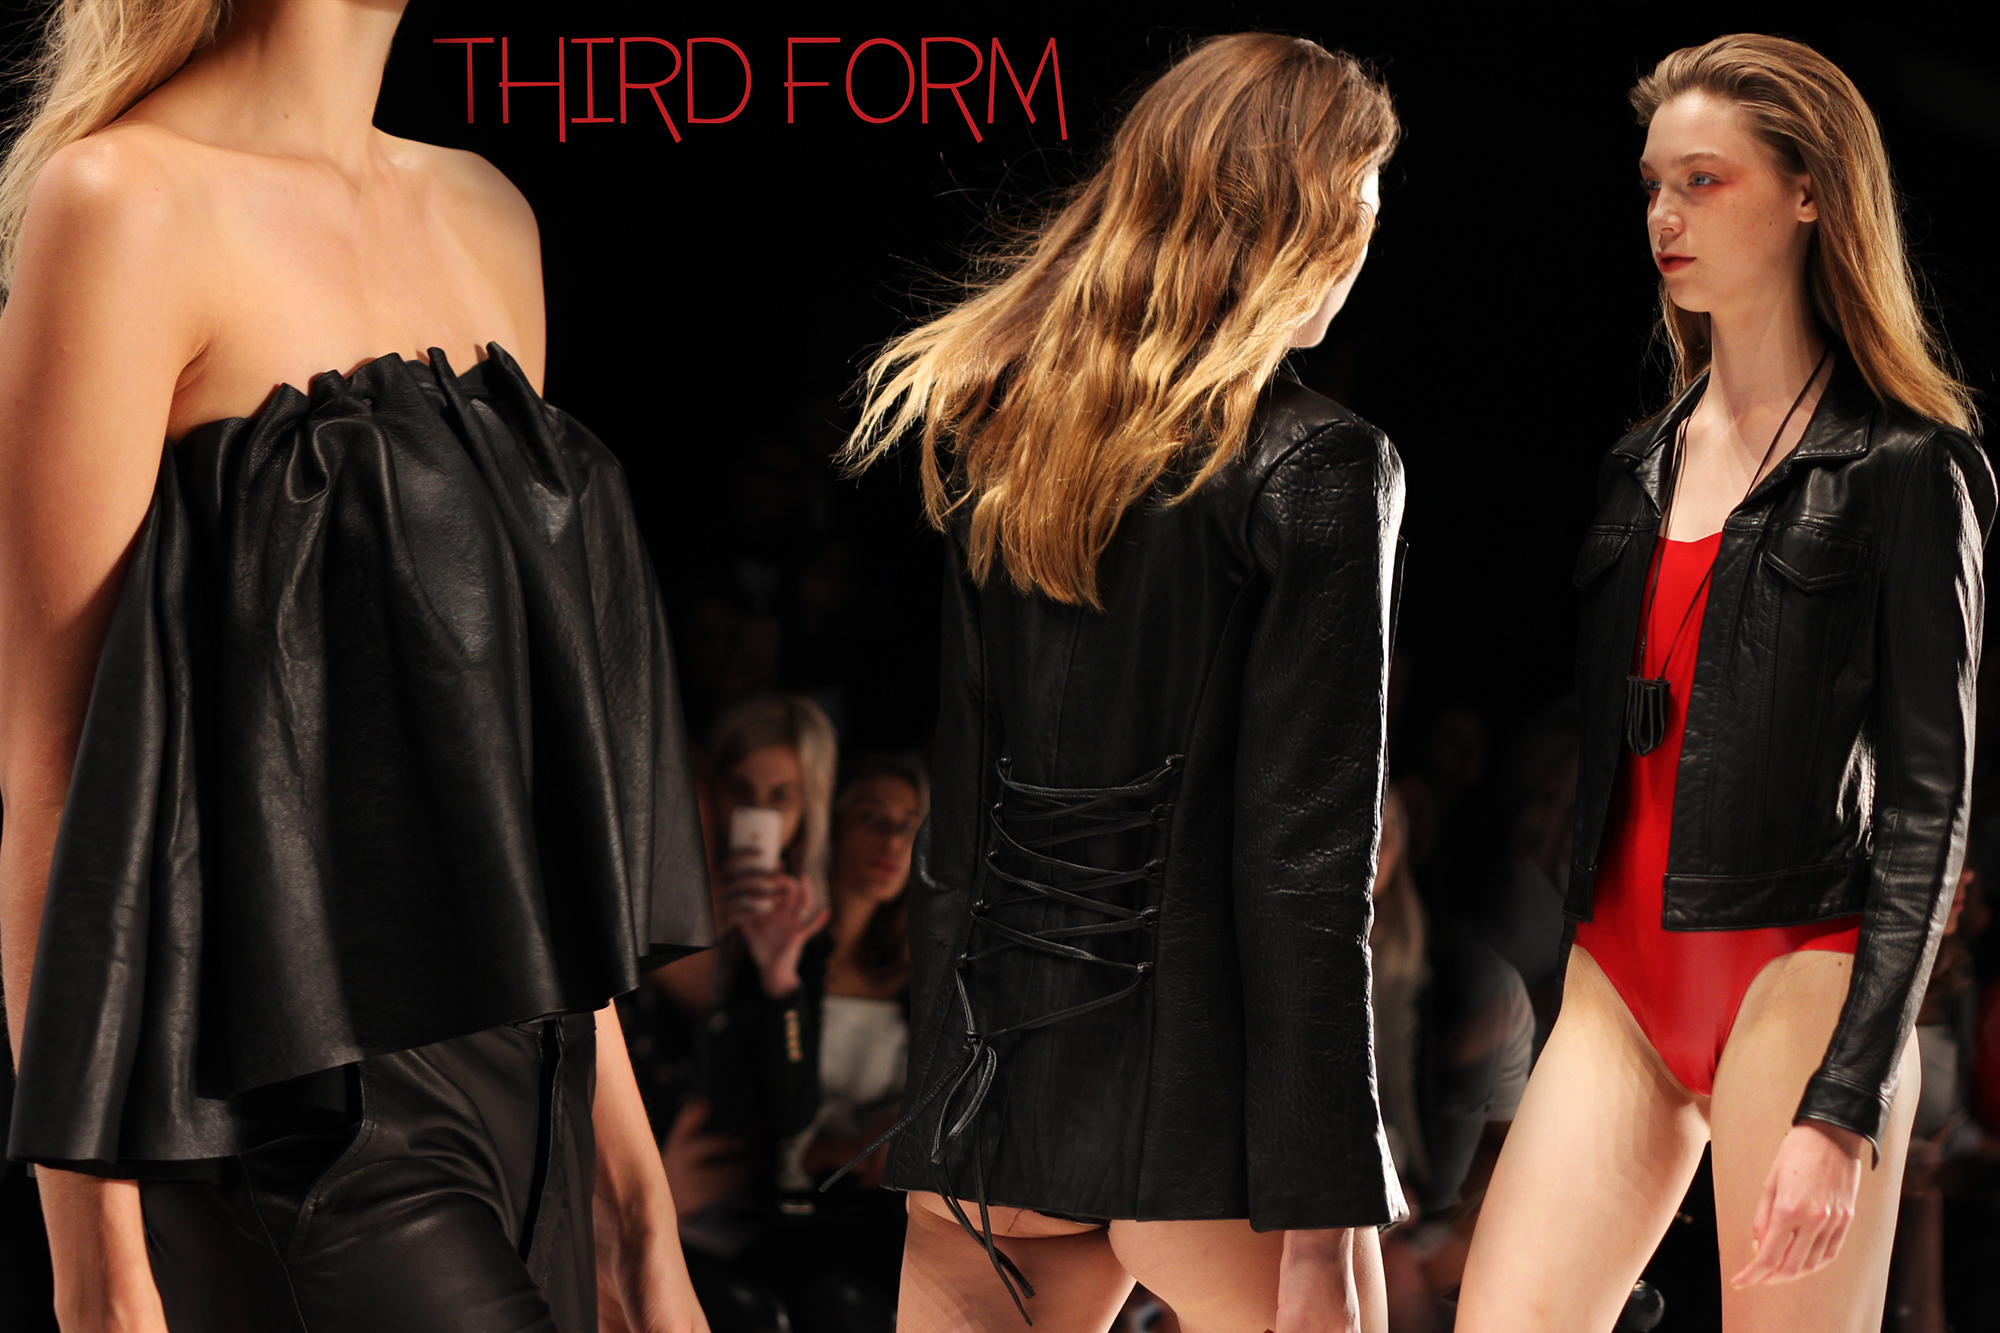 Third_Form_MBFWA_2016